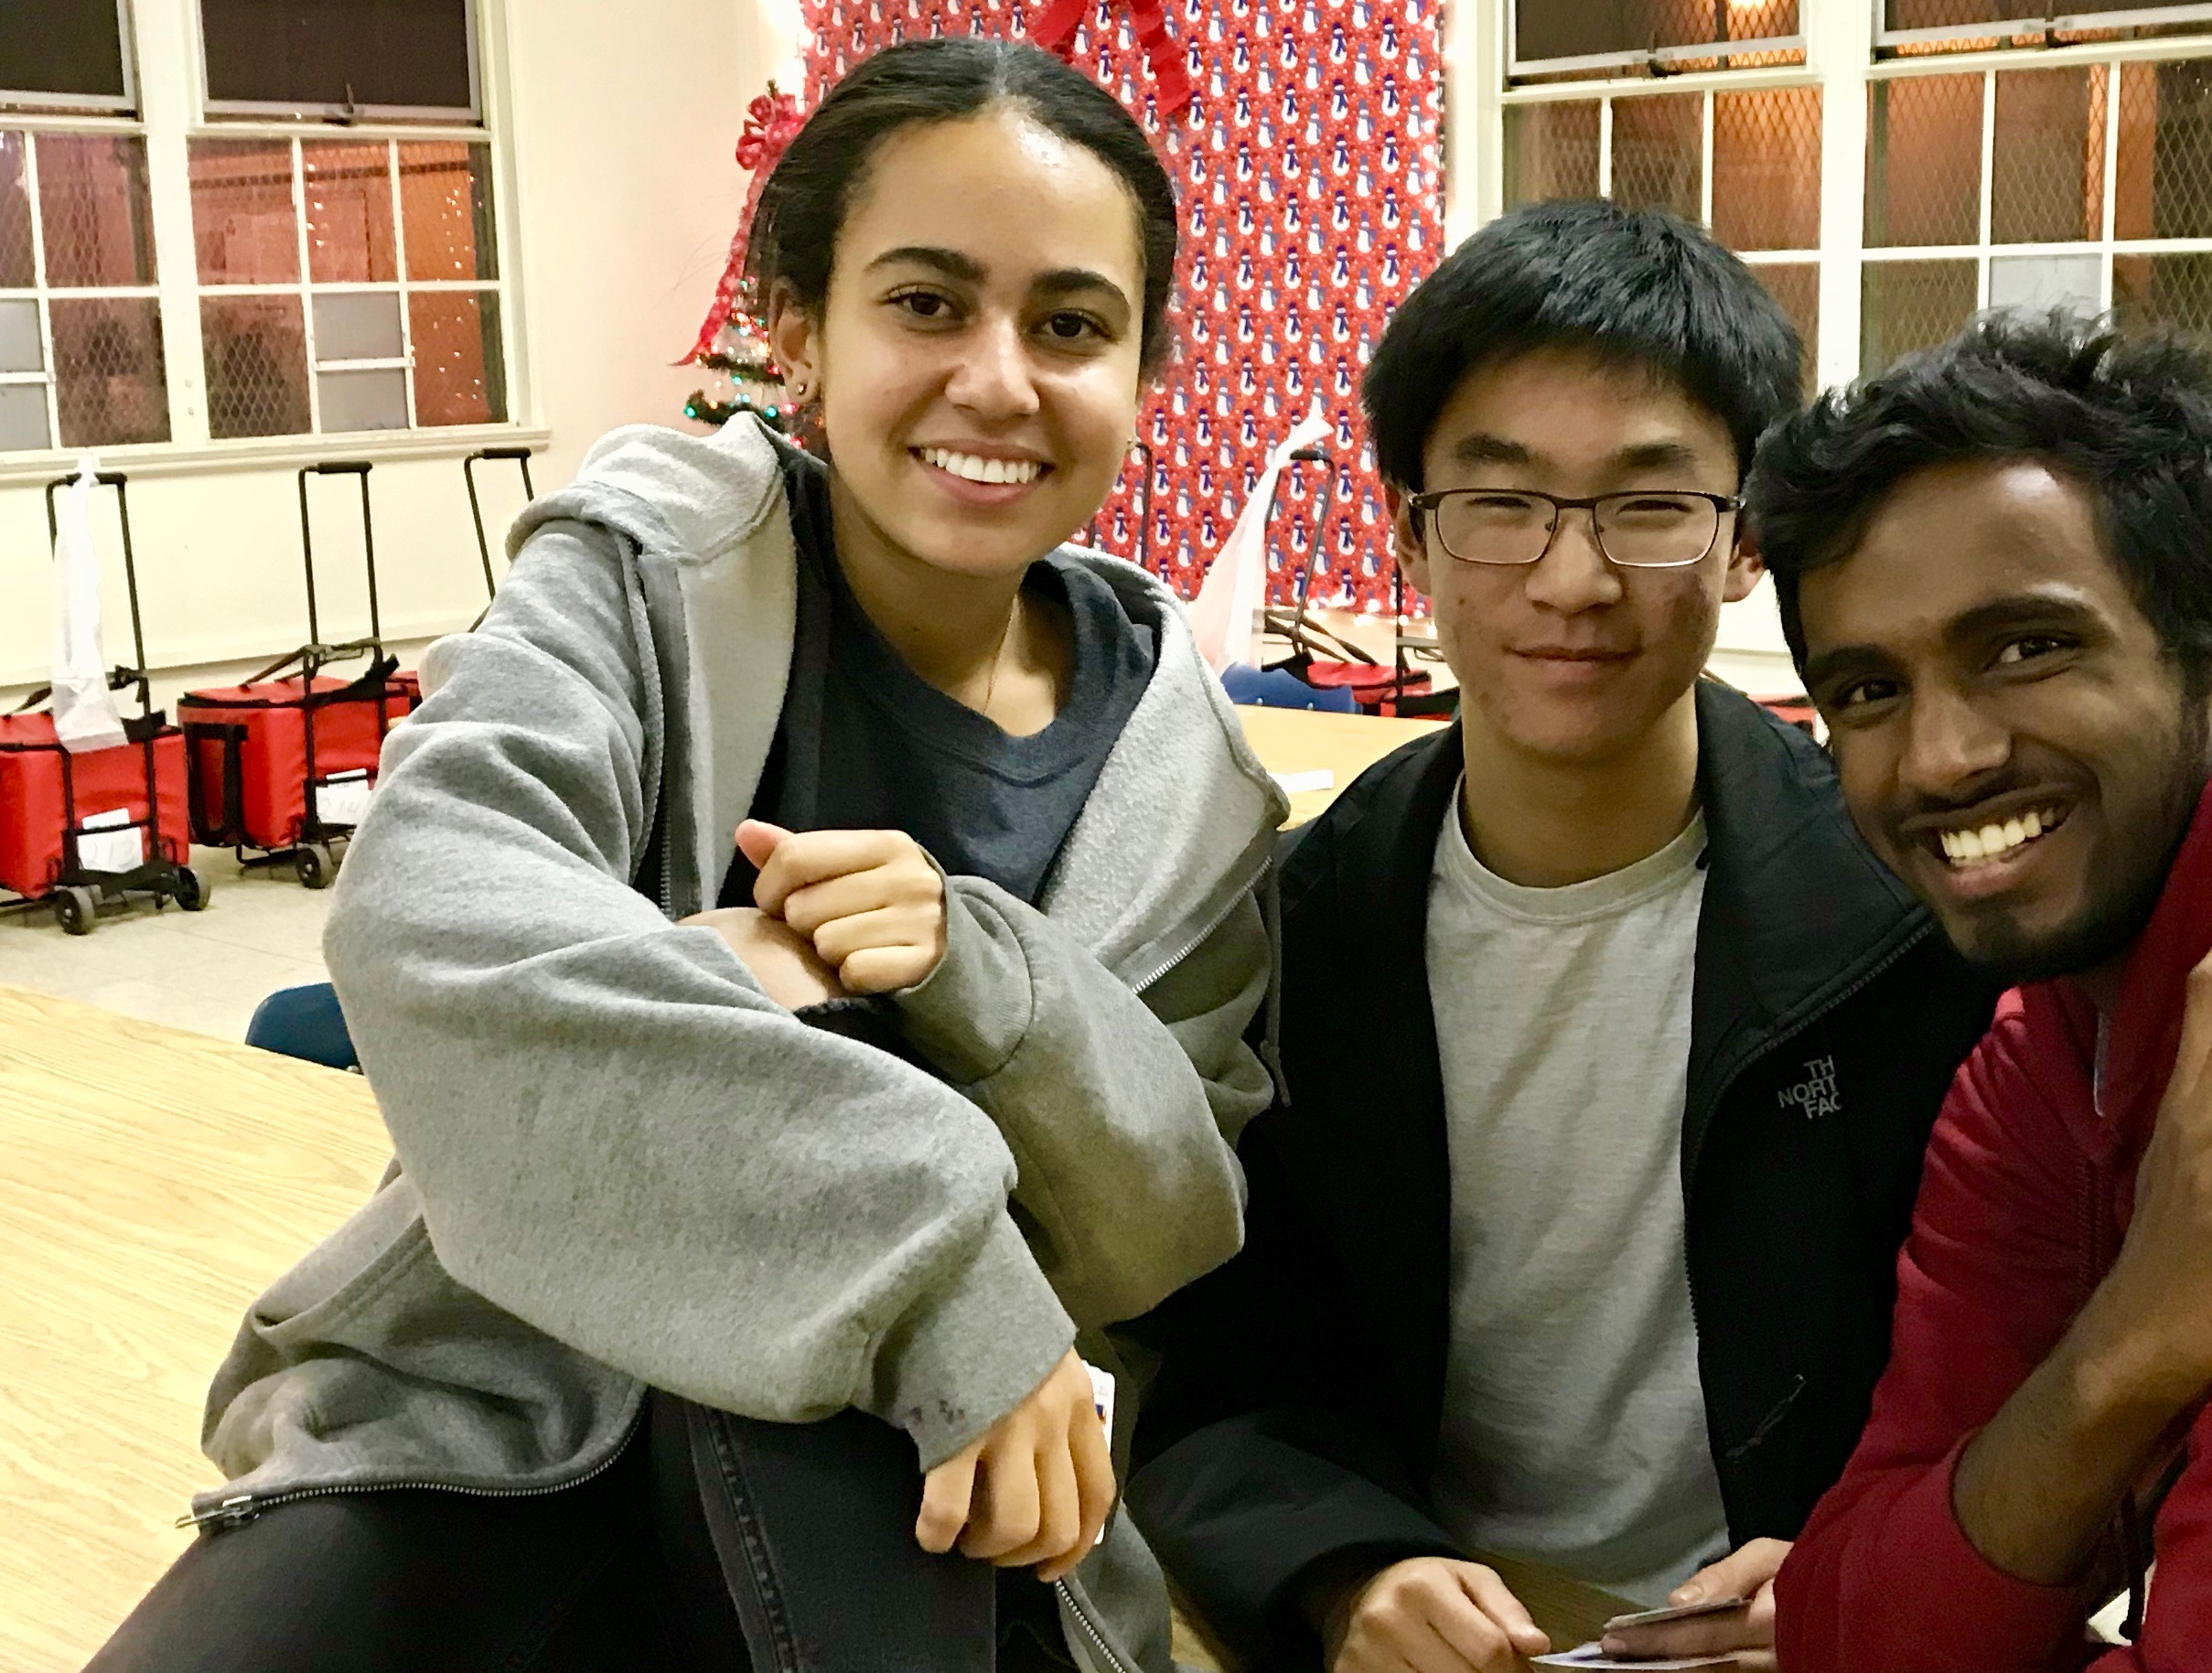 Harvard Westlake mentor, Alexandria Ankai with Pradeep and Matthew